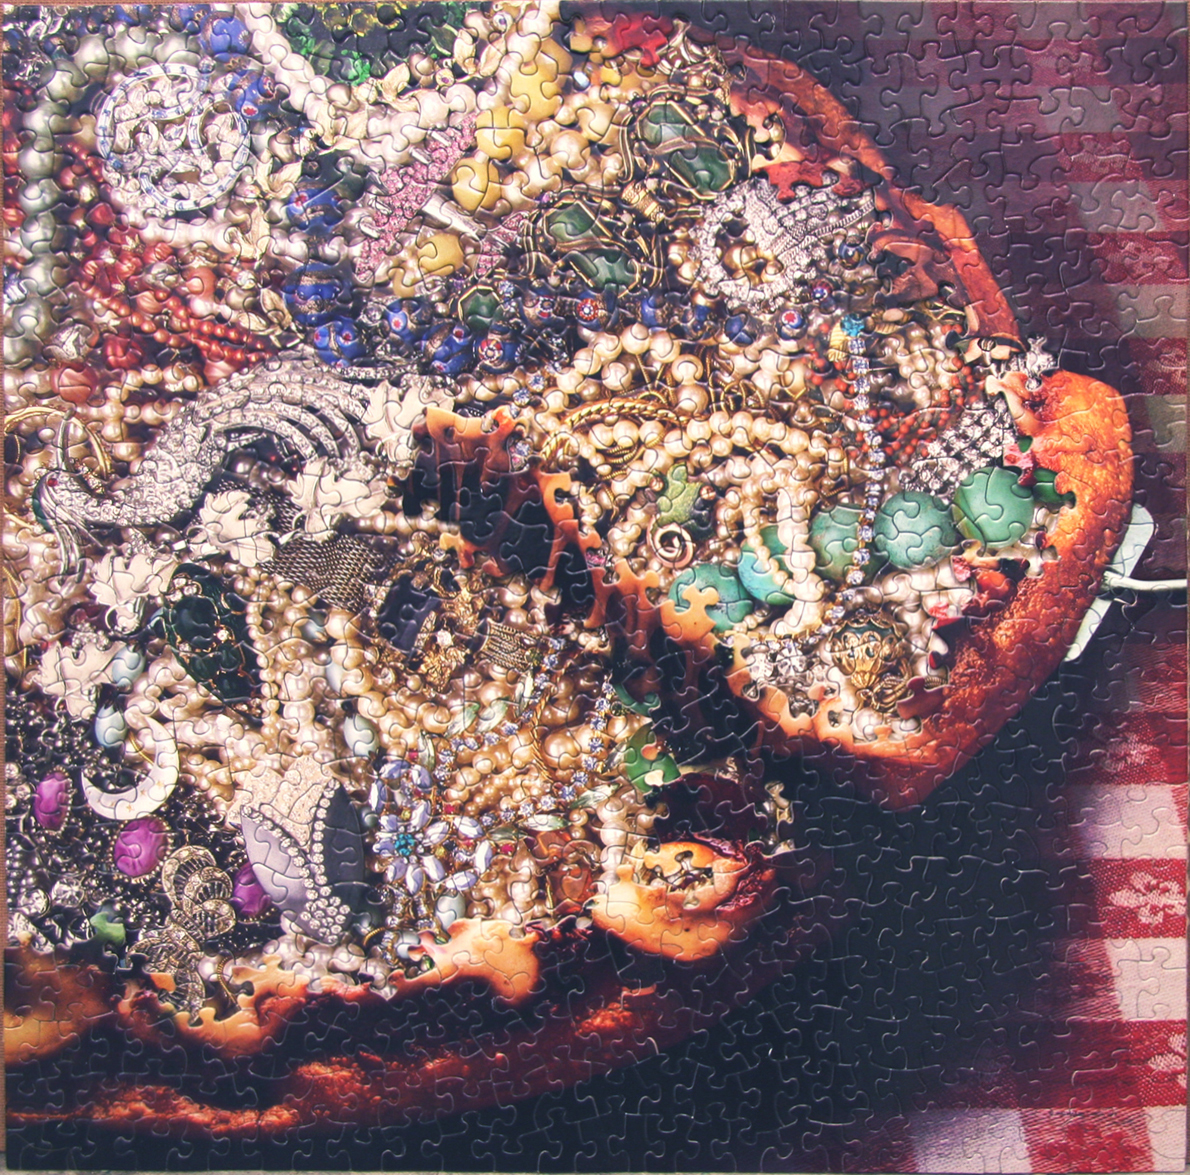 Diamonds and Pearls, Puzzle collage